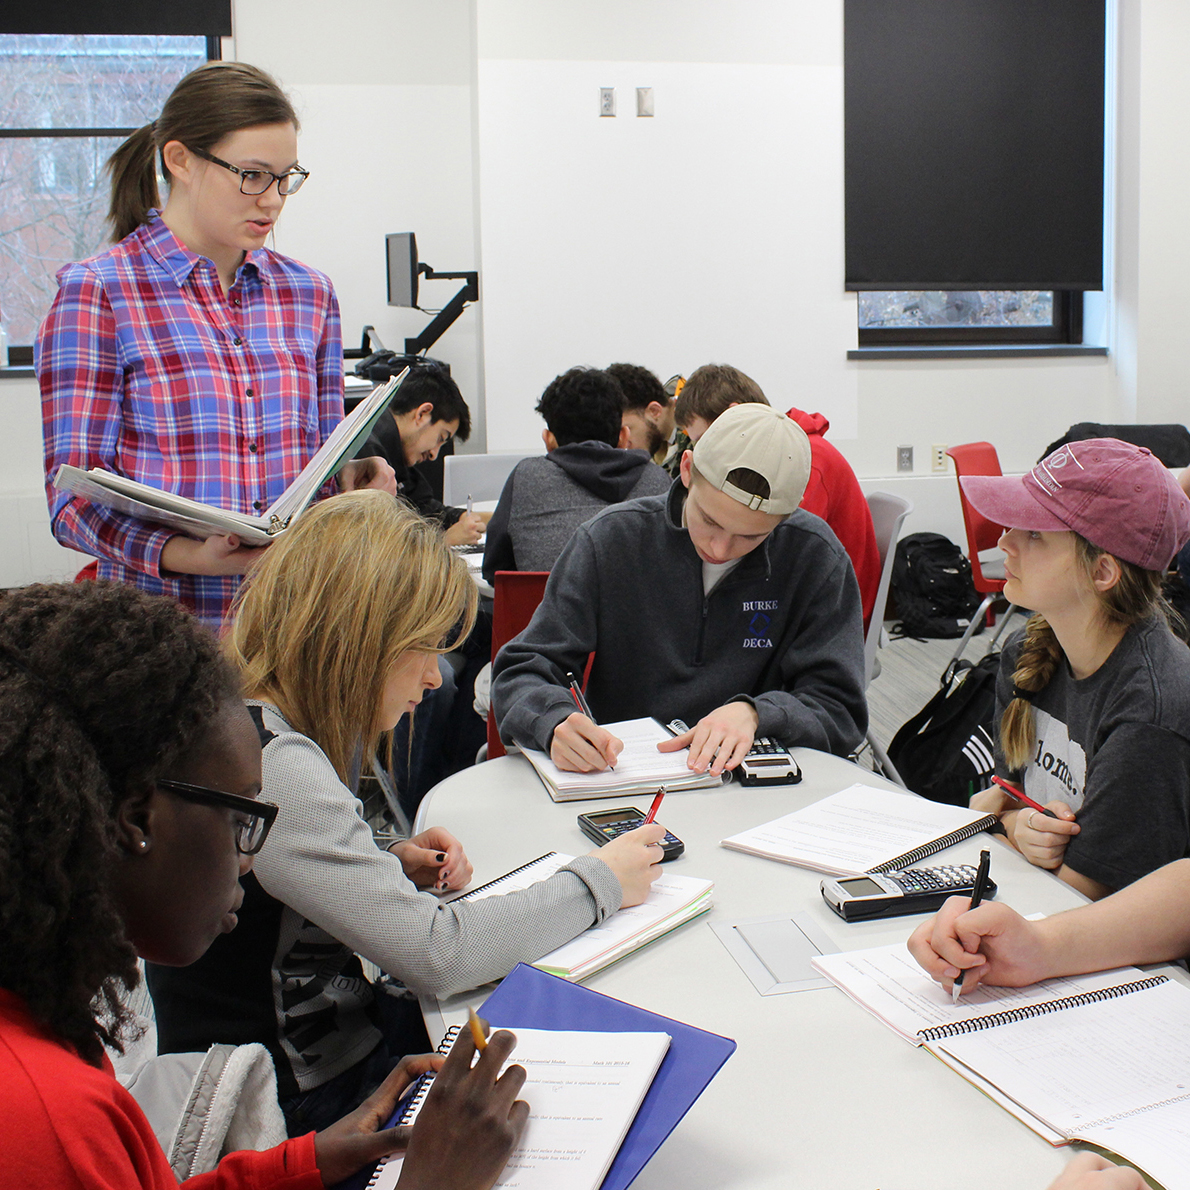 Undergraduate learning assistant Meredith Hovis (left), a secondary mathematics (6-12) major, facilitates group discussions with students in a Math 101 course